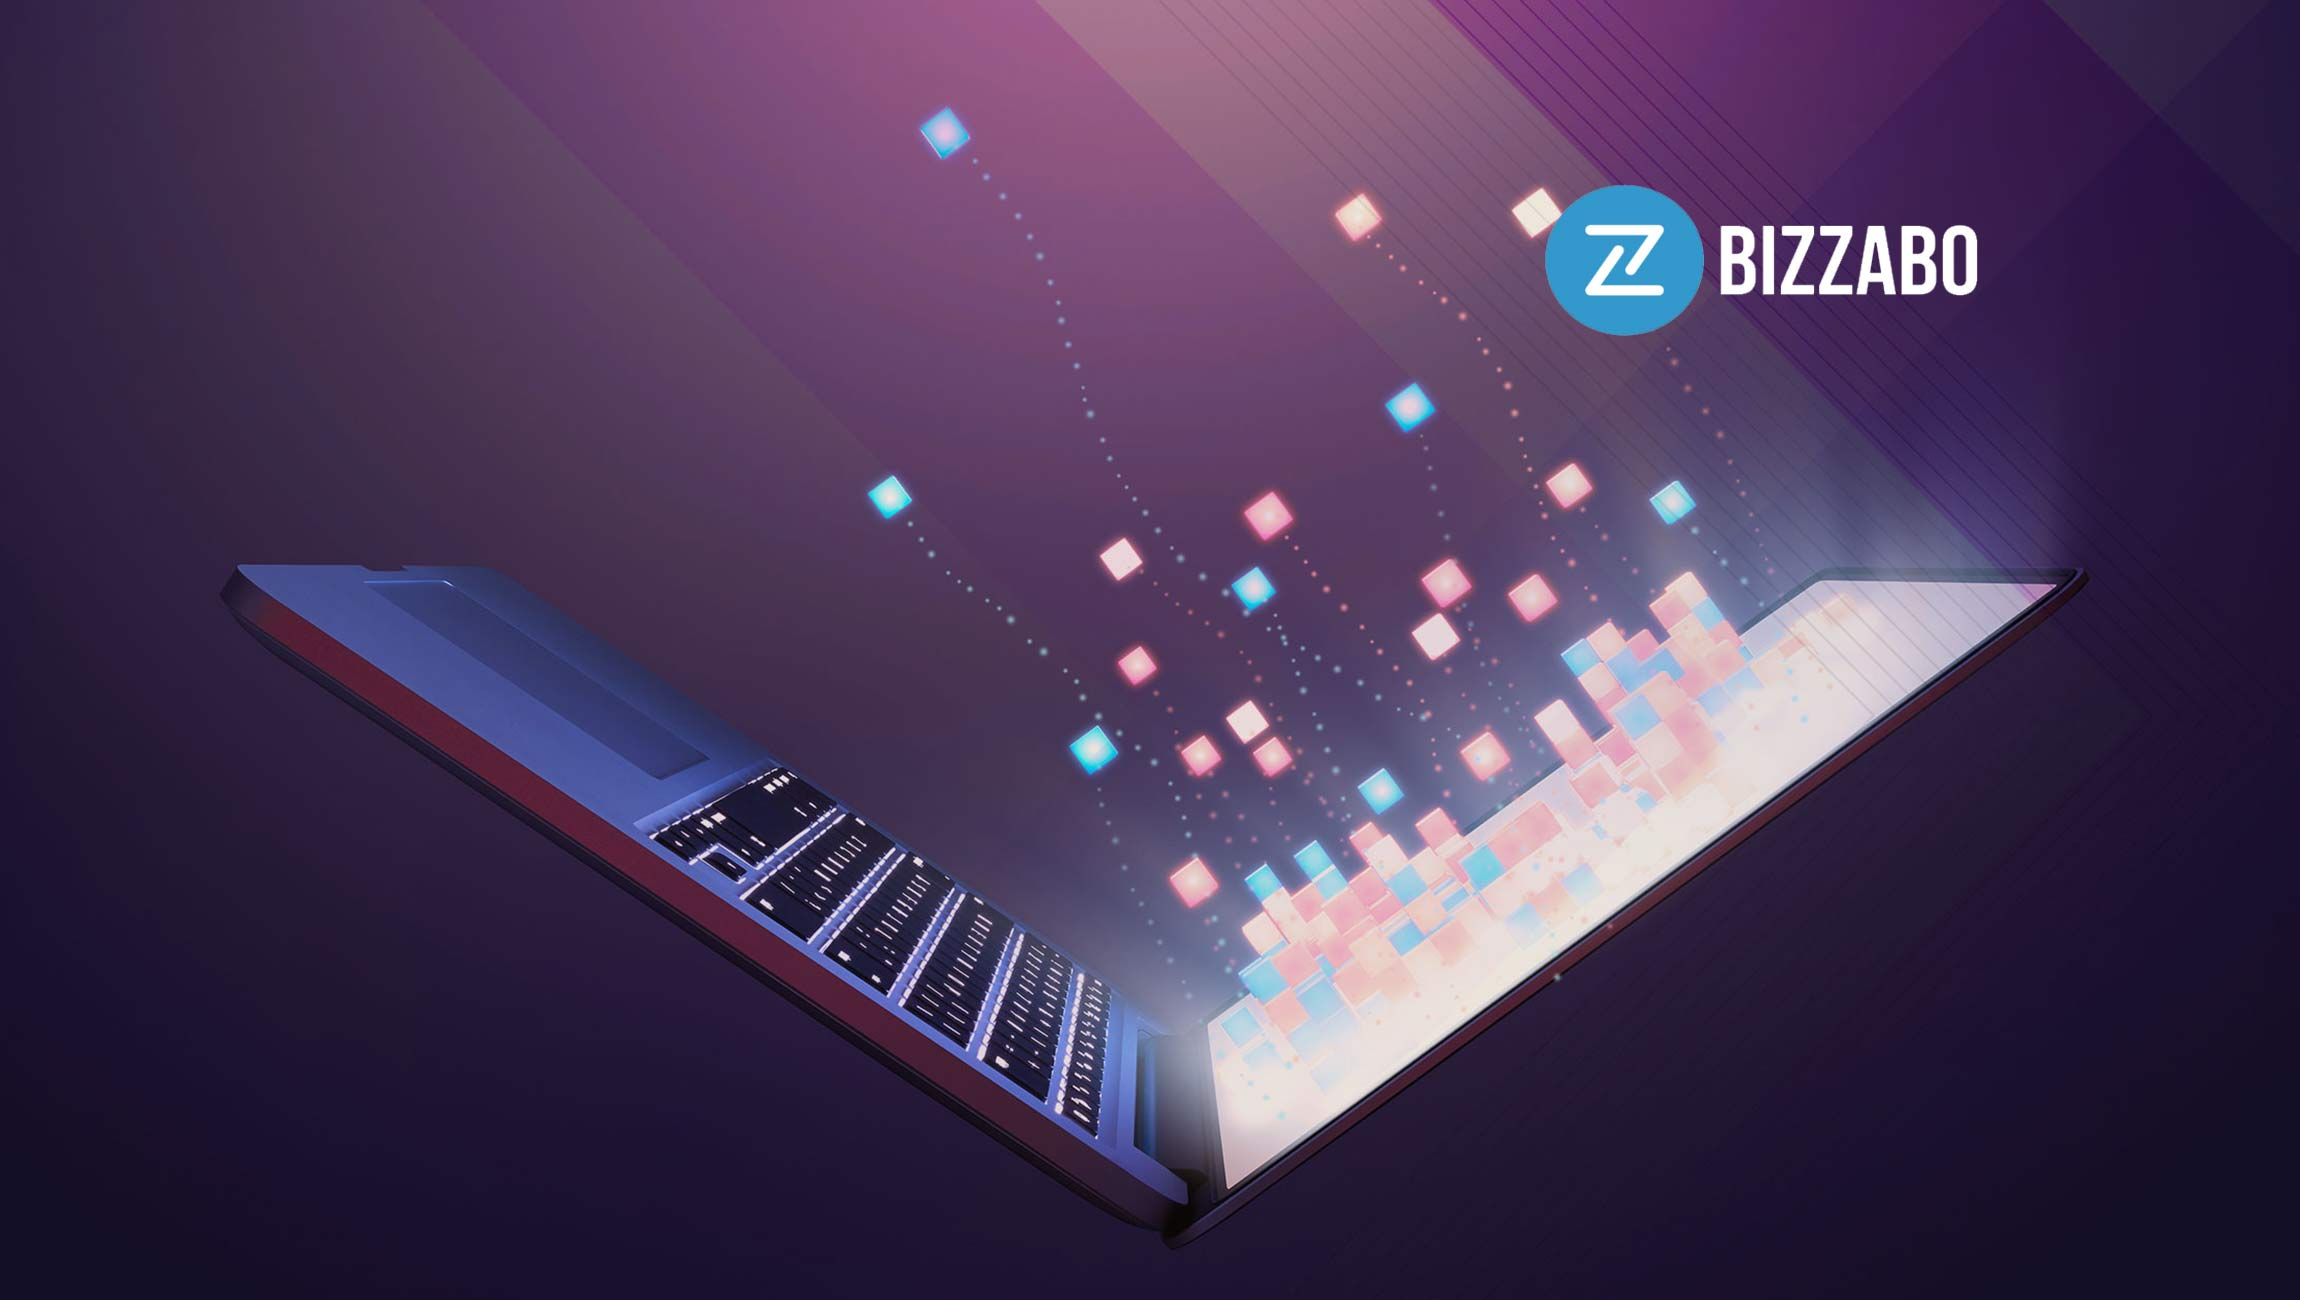 Bizzabo's Agents of Hybrid Delivers Behind-the-Scenes Look at the Future of Events